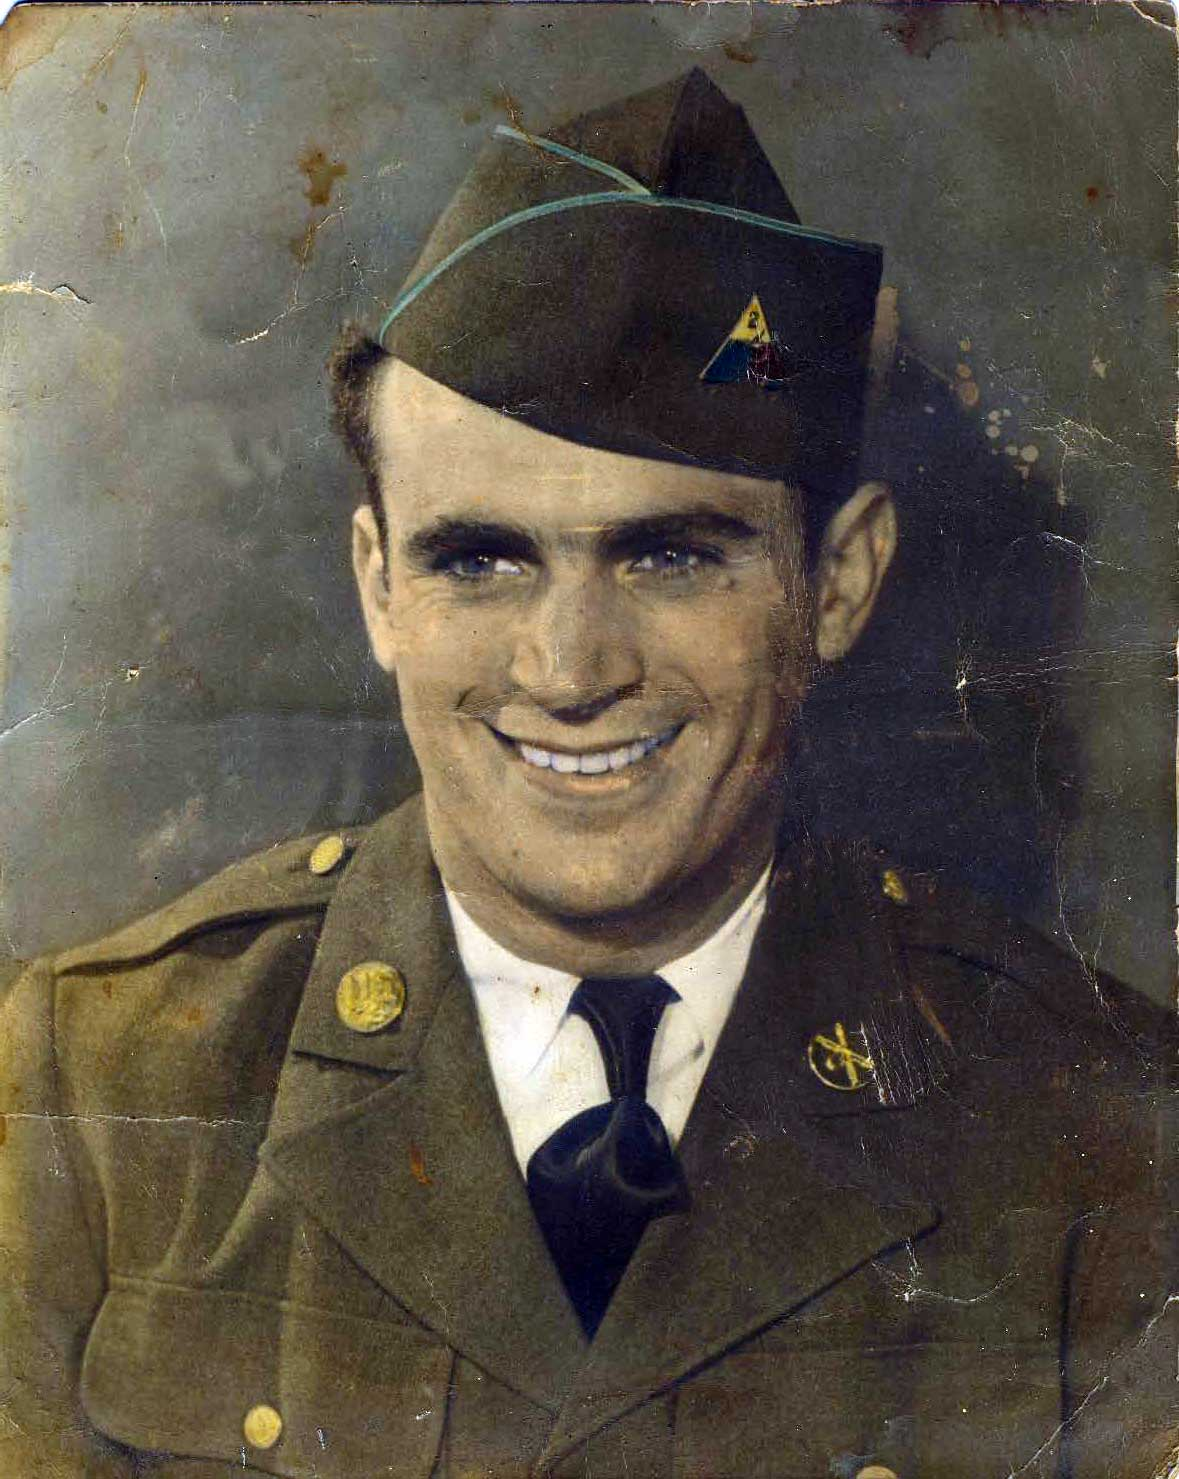 Mac Klein, from NYC, in the Army -  WW2!